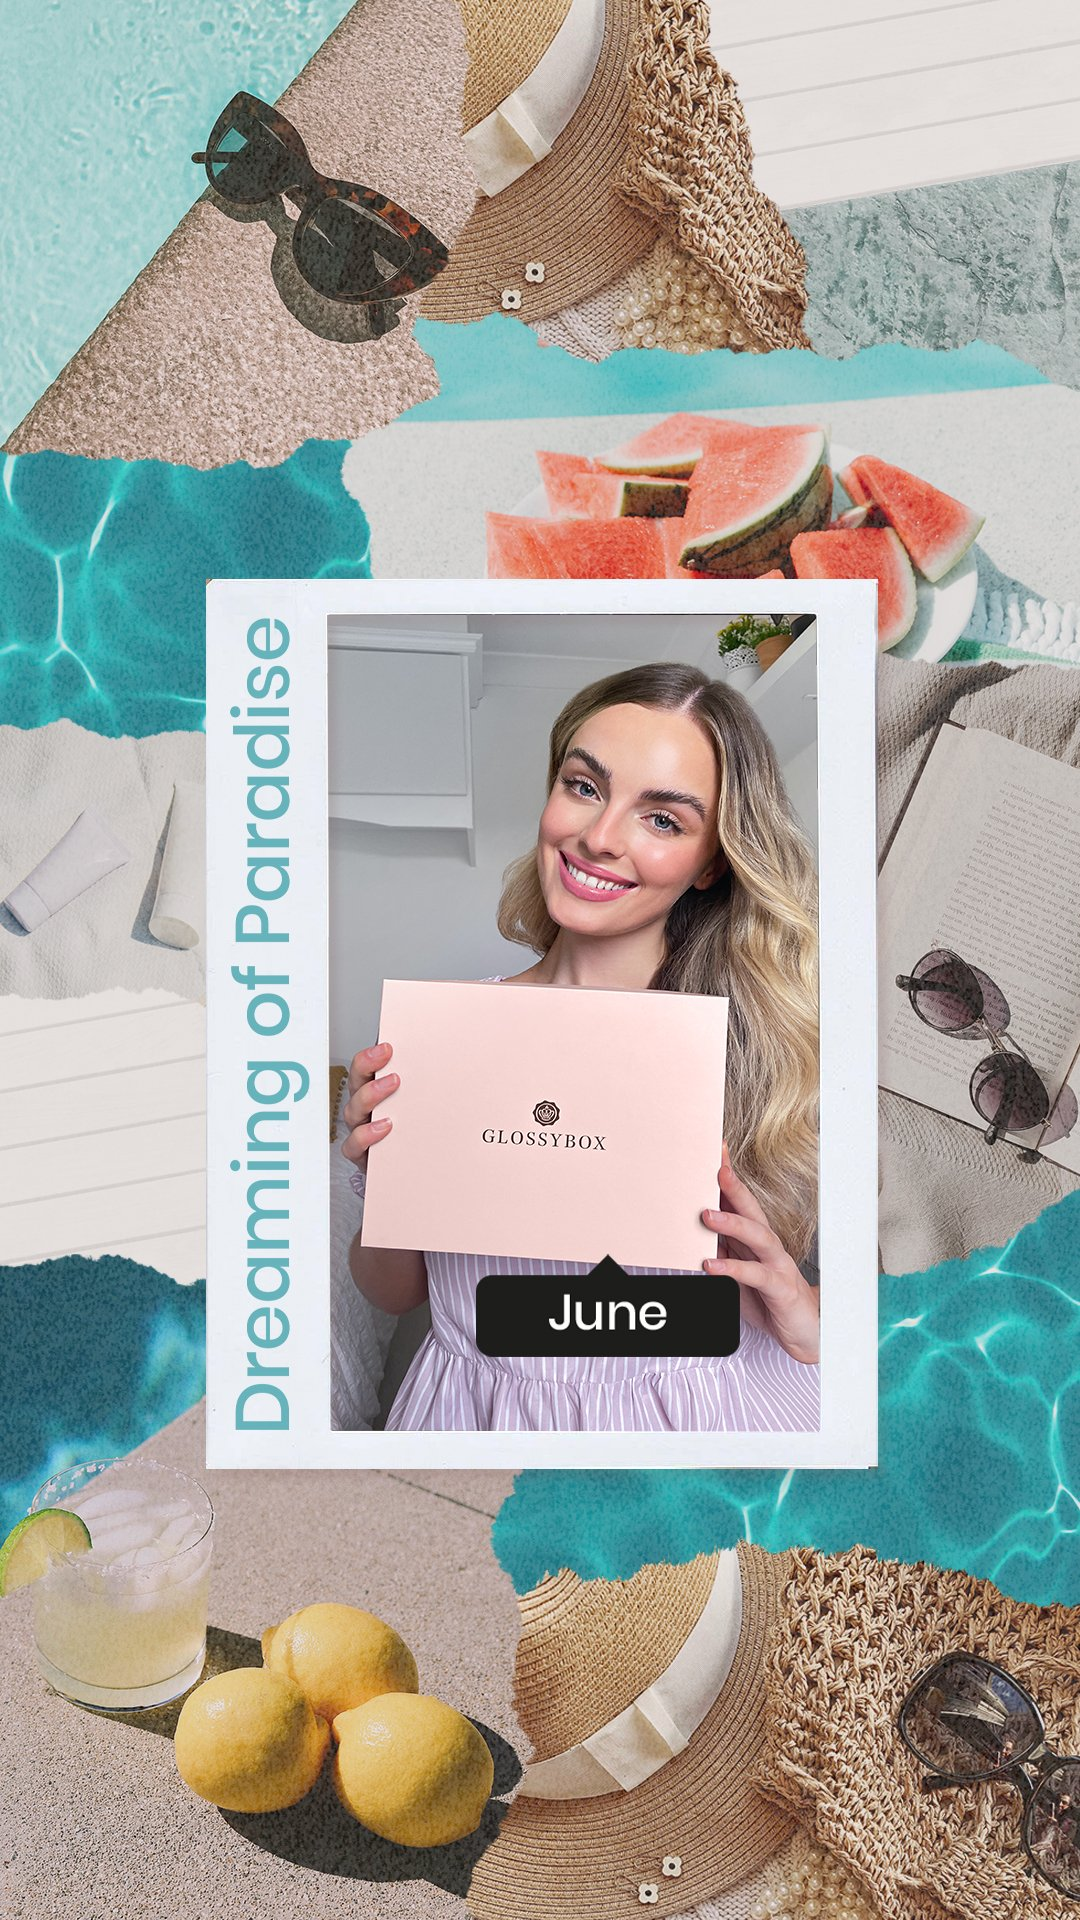 dreaming-of-paradise-june-2021-glossybox